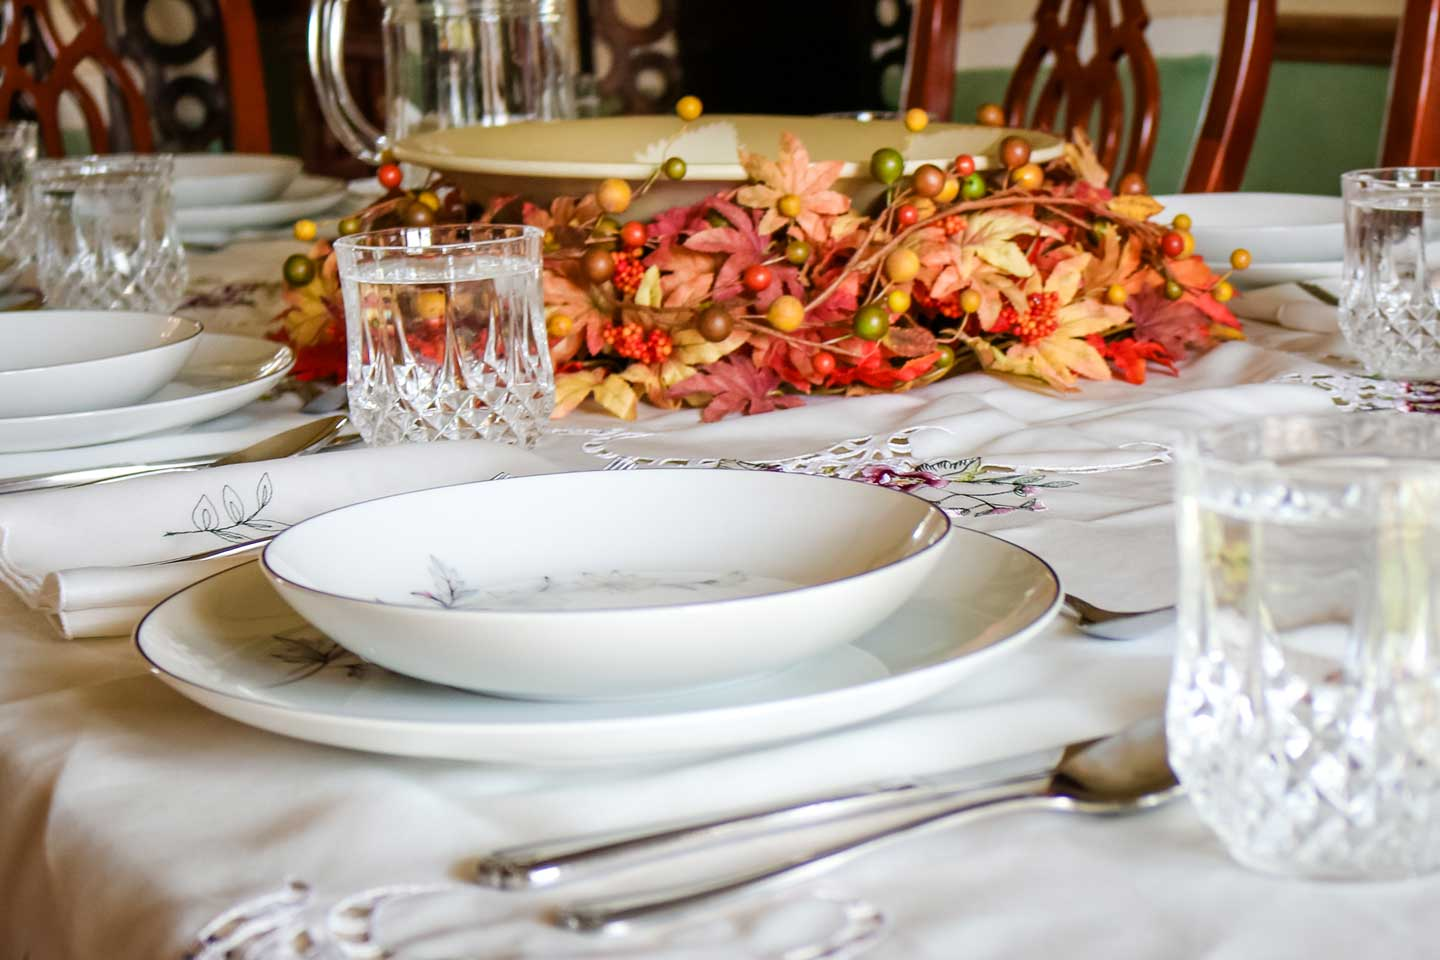 Closeup of a tablescape set for Thanksgiving dinner, with a white tablecloth, china and crystal, and a yellow-and-orange wreath centerpiece.